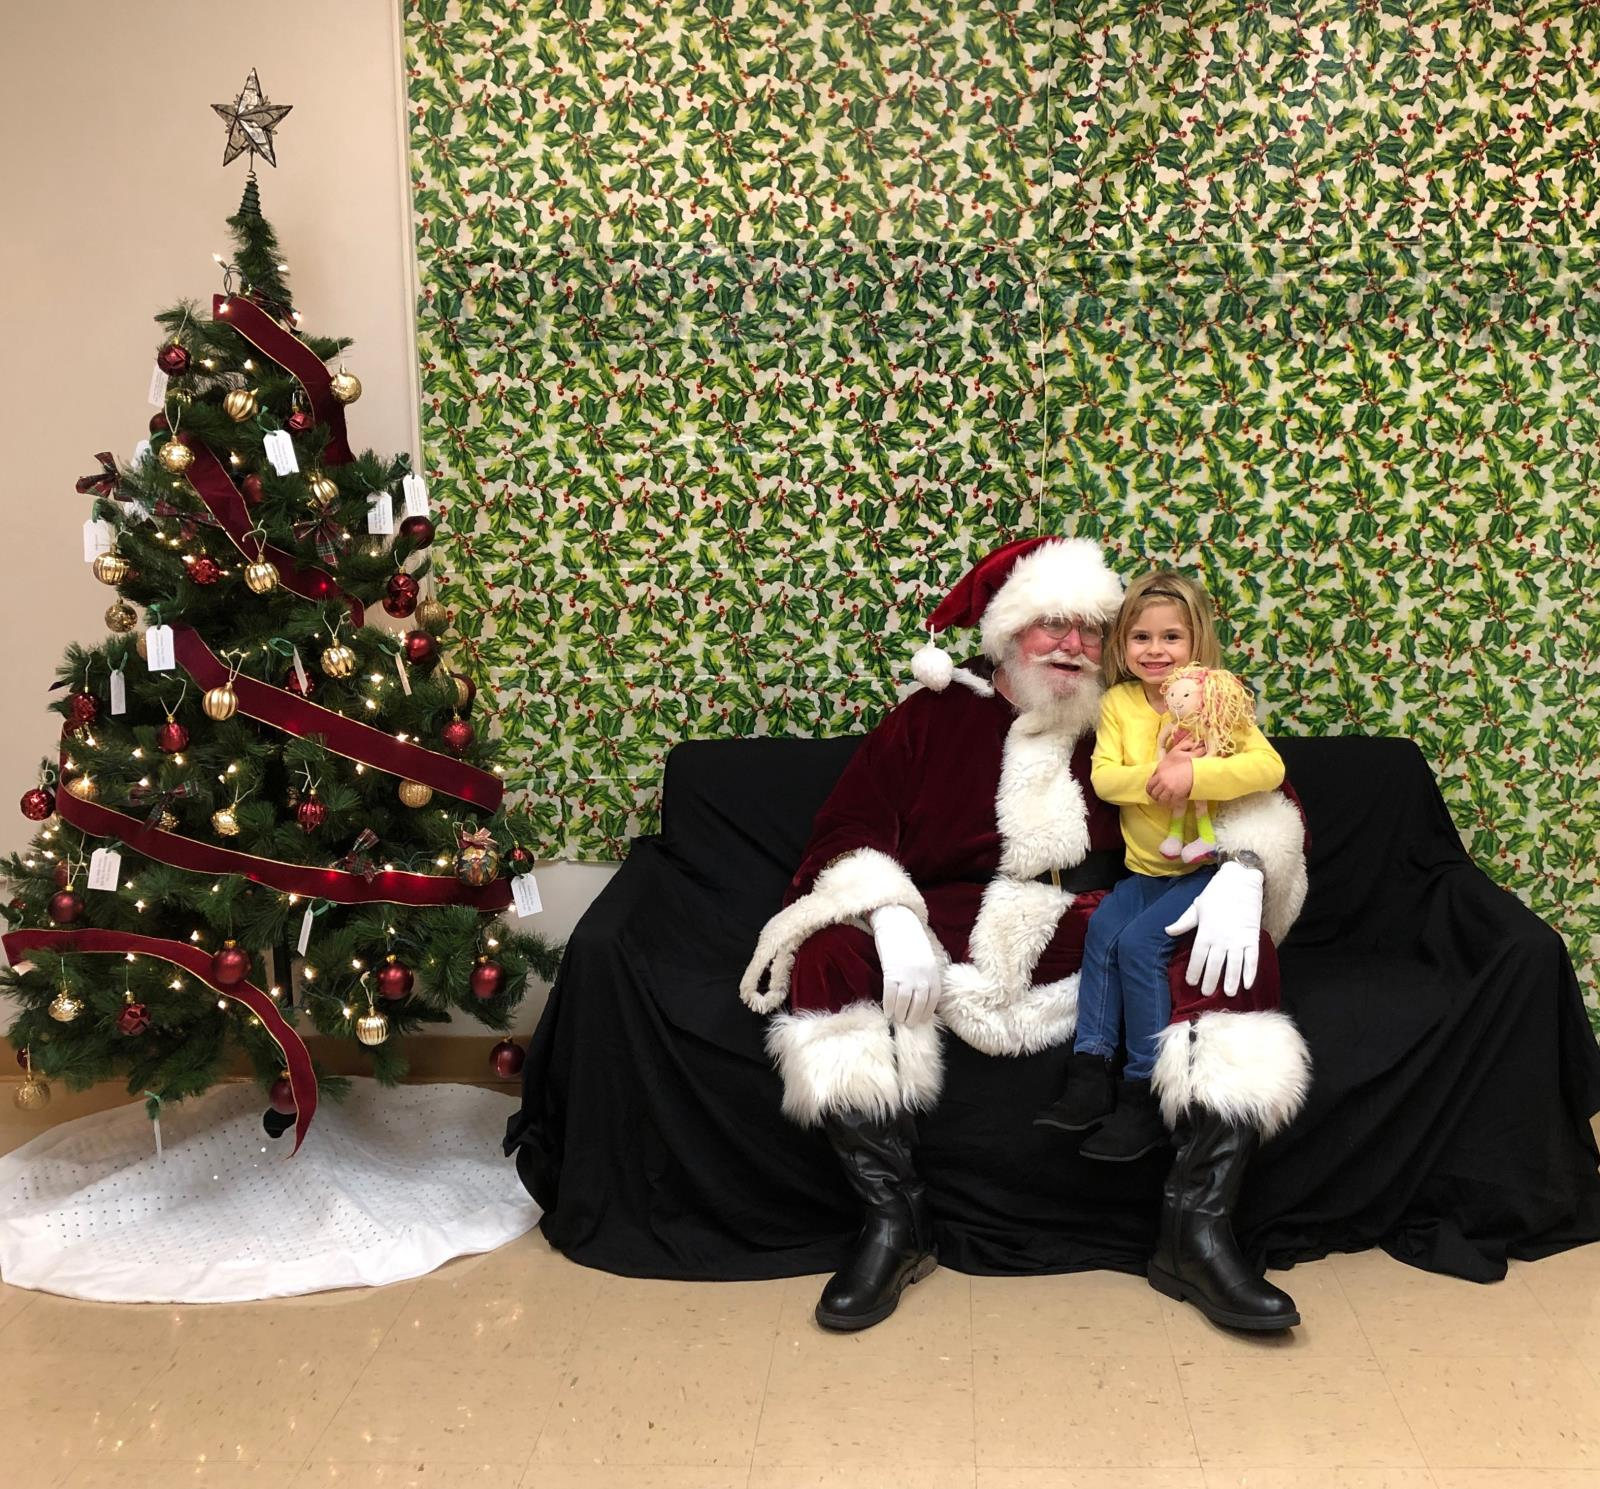 Santa Claus with little girl in yellow on his lap sitting on a couch next to a decorated and lit tree with a green backdrop